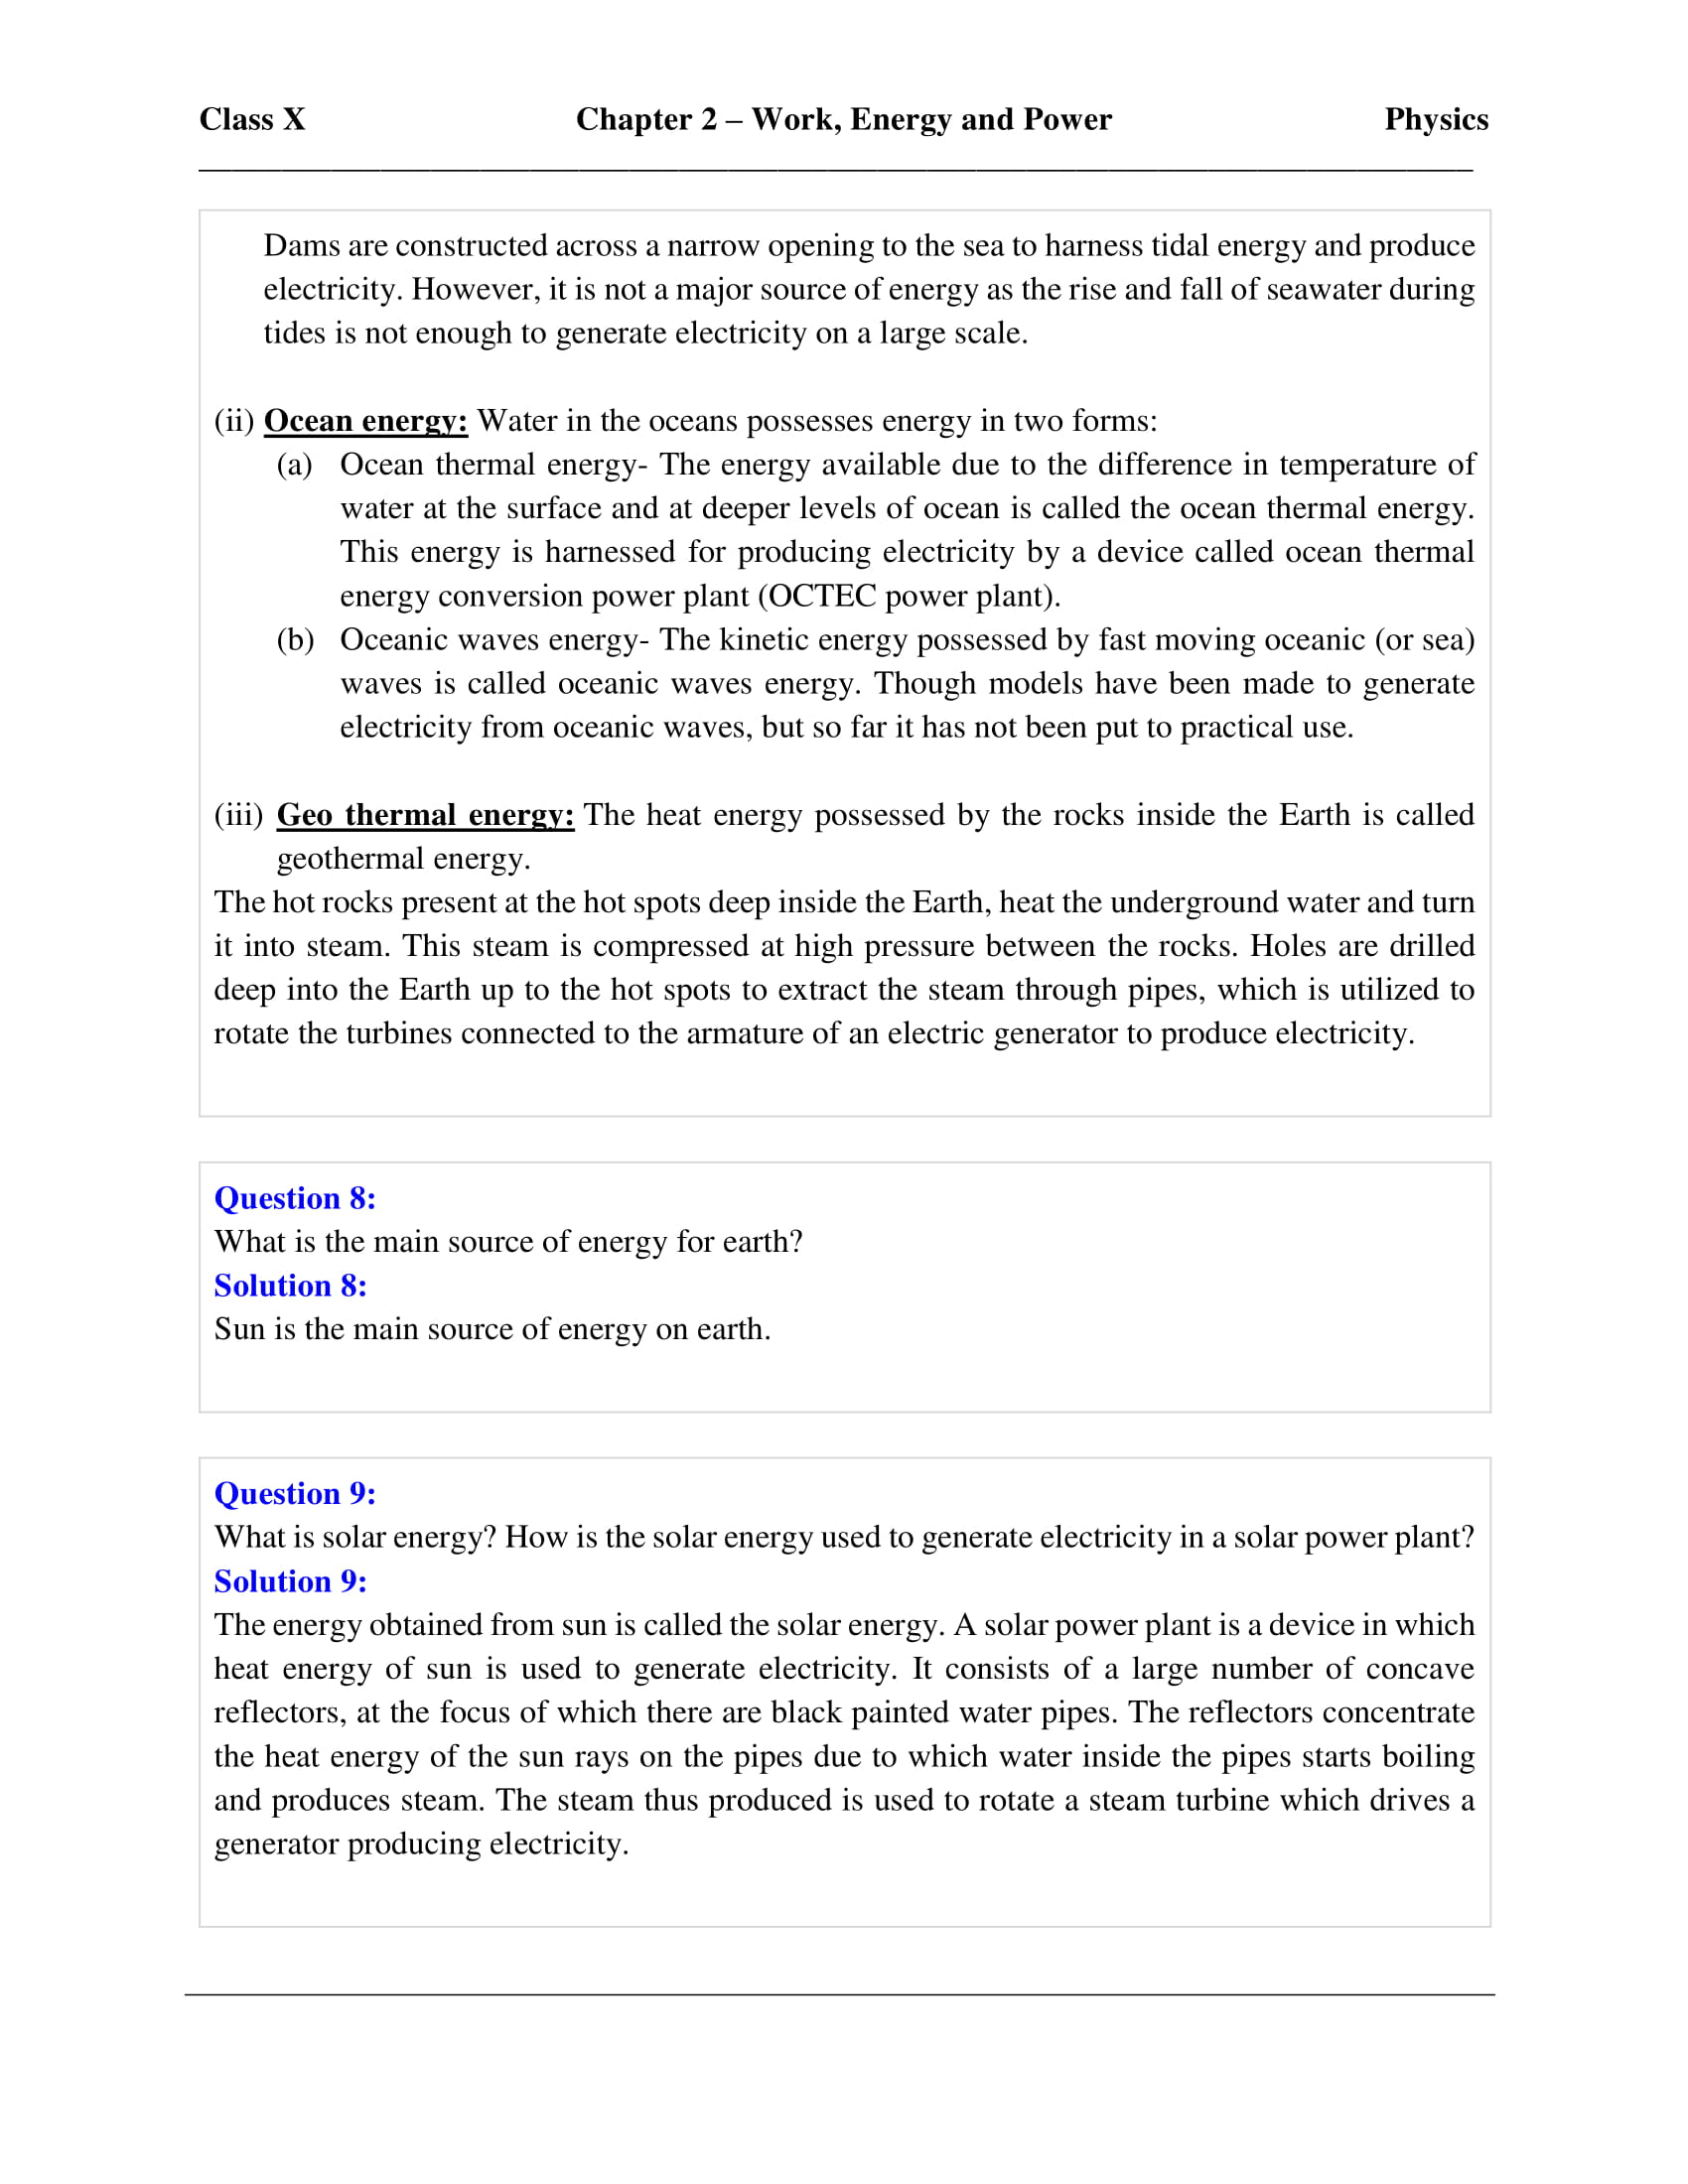 icse-selina-physics-solutions-class-10-chapter-2-work-energy-and-power-35